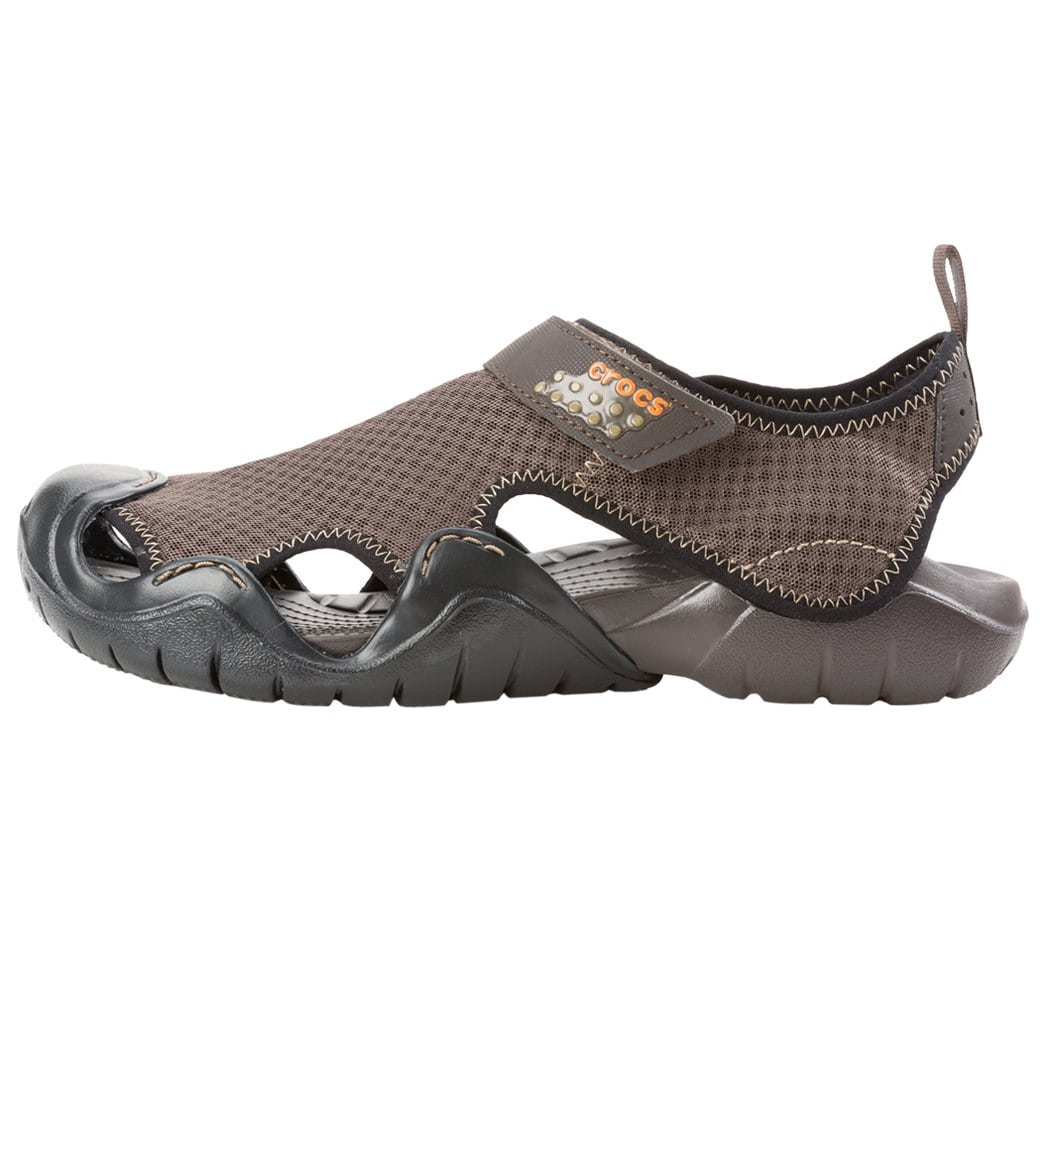 f56cc24cded Crocs Men's Swiftwater Sandal at SwimOutlet.com - Free Shipping